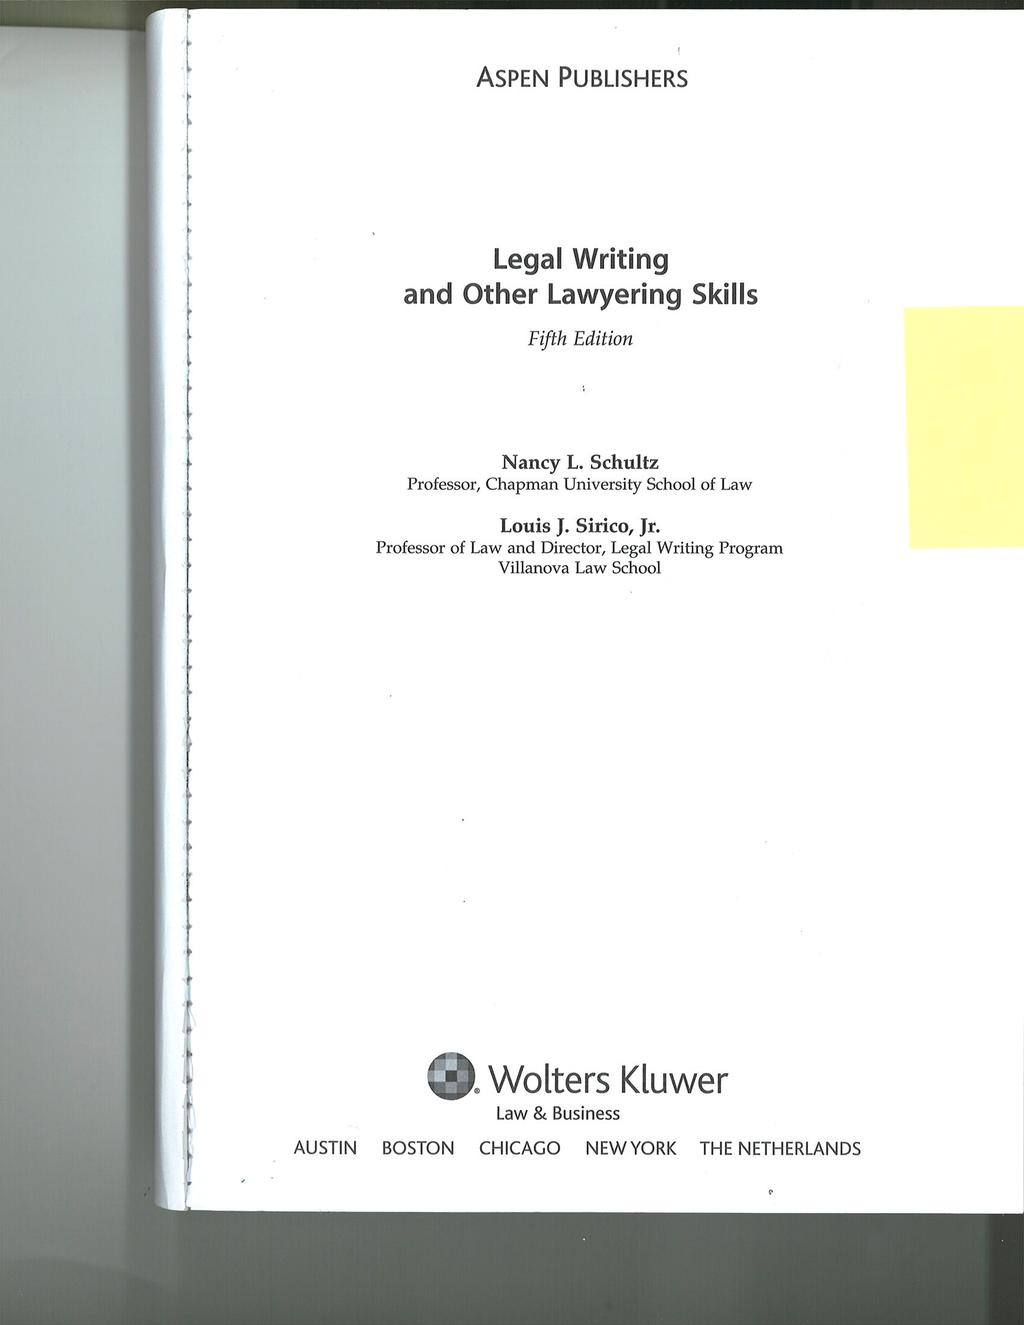 Copyright 2010 by Wolters Kluwer/Aspen.